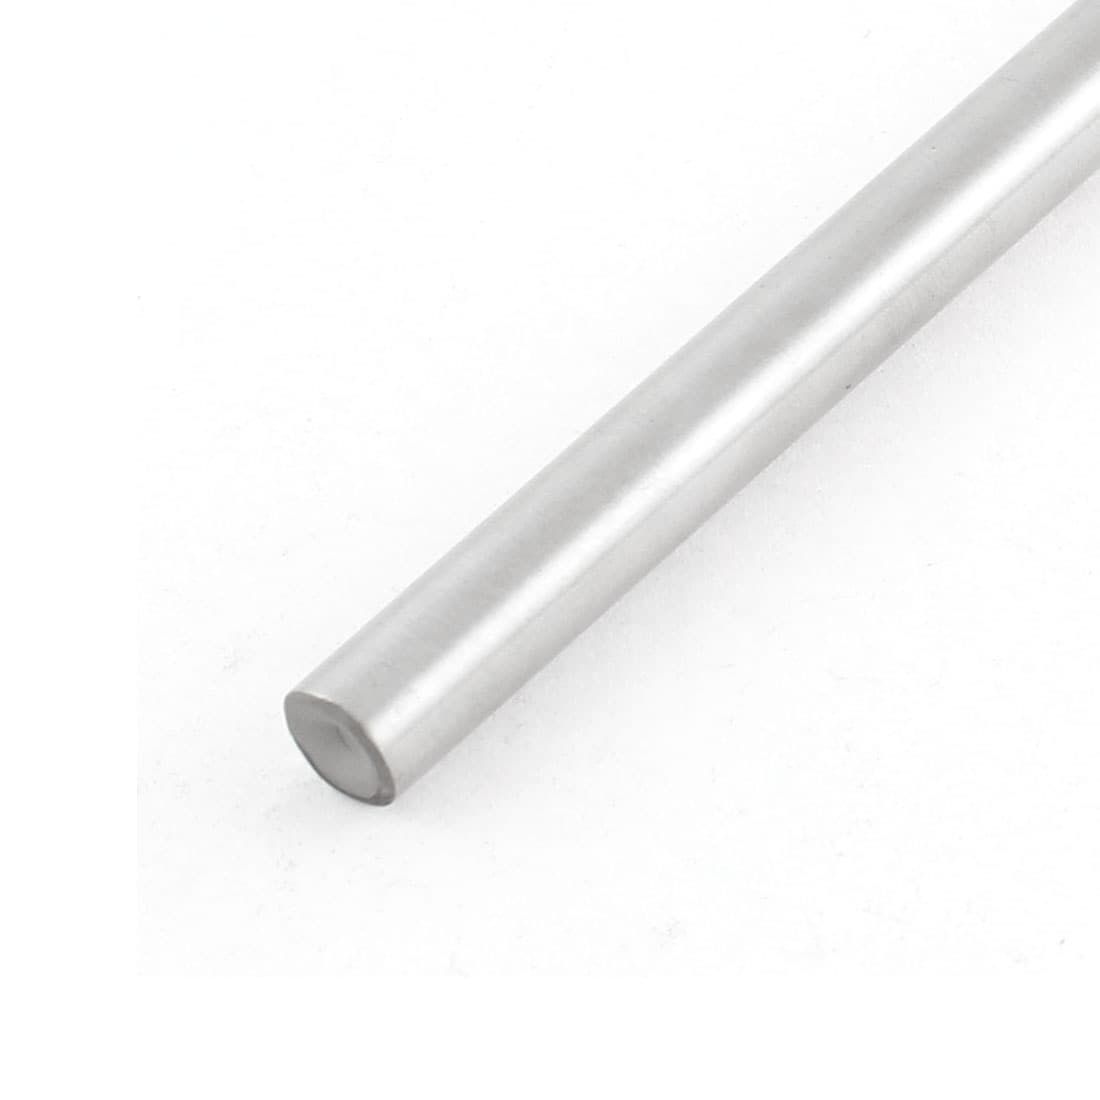 White Wire Stainless Steel Sheath 9.5 x 125mm AC 220V 500W Cartridge ...